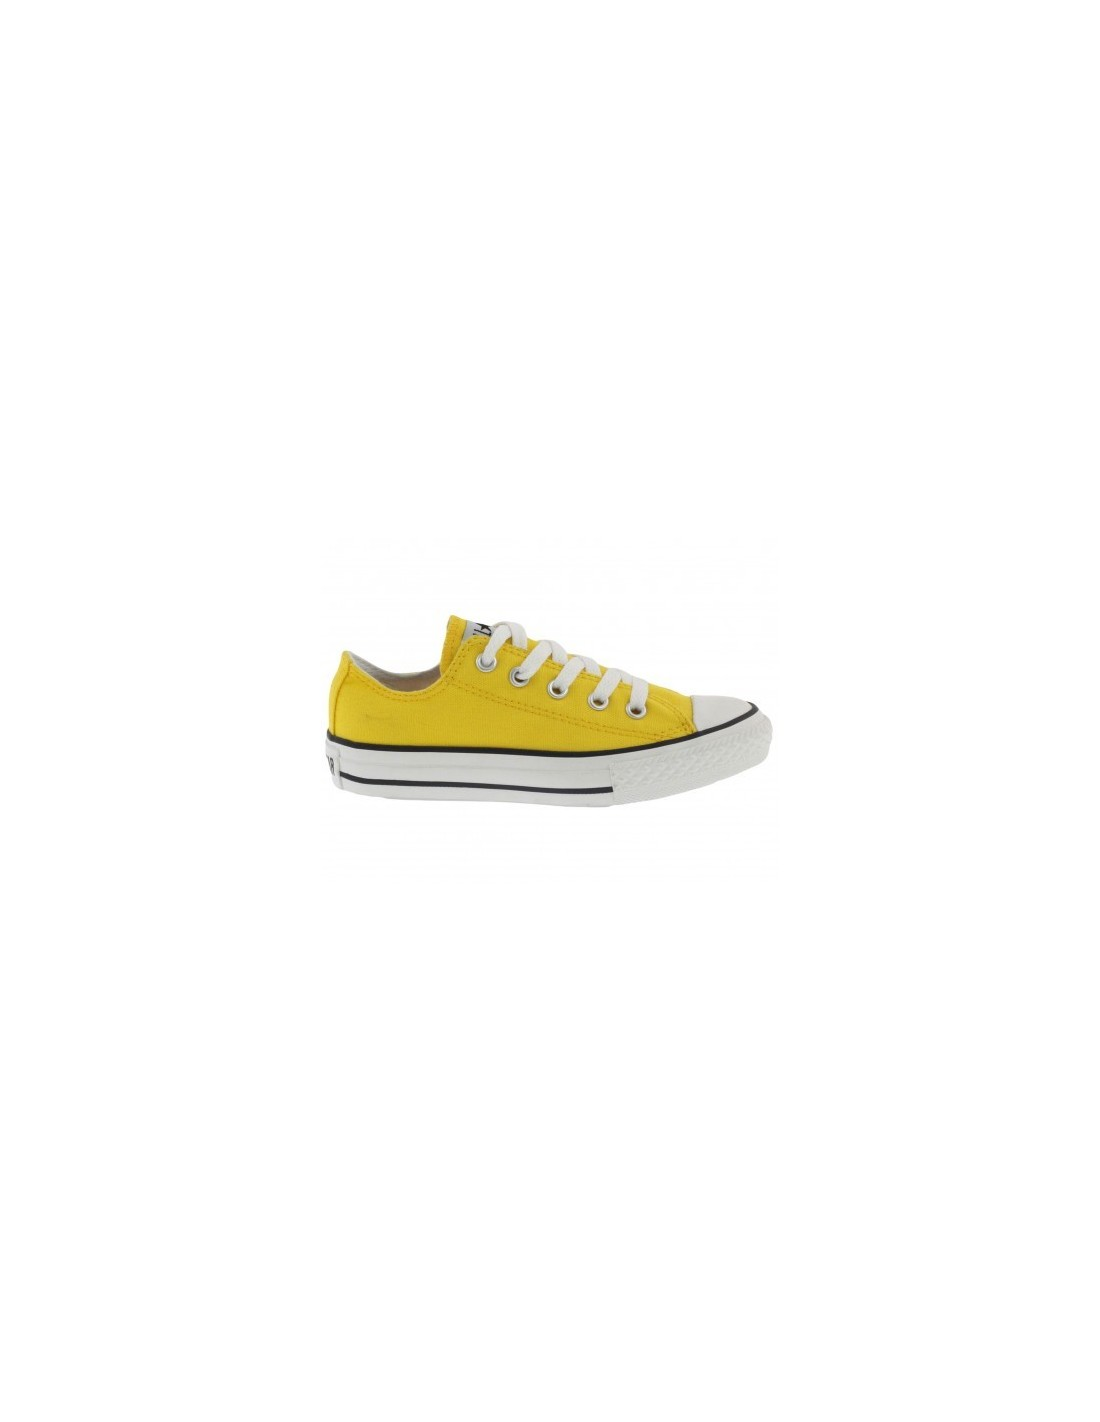 converse all star bambina basse